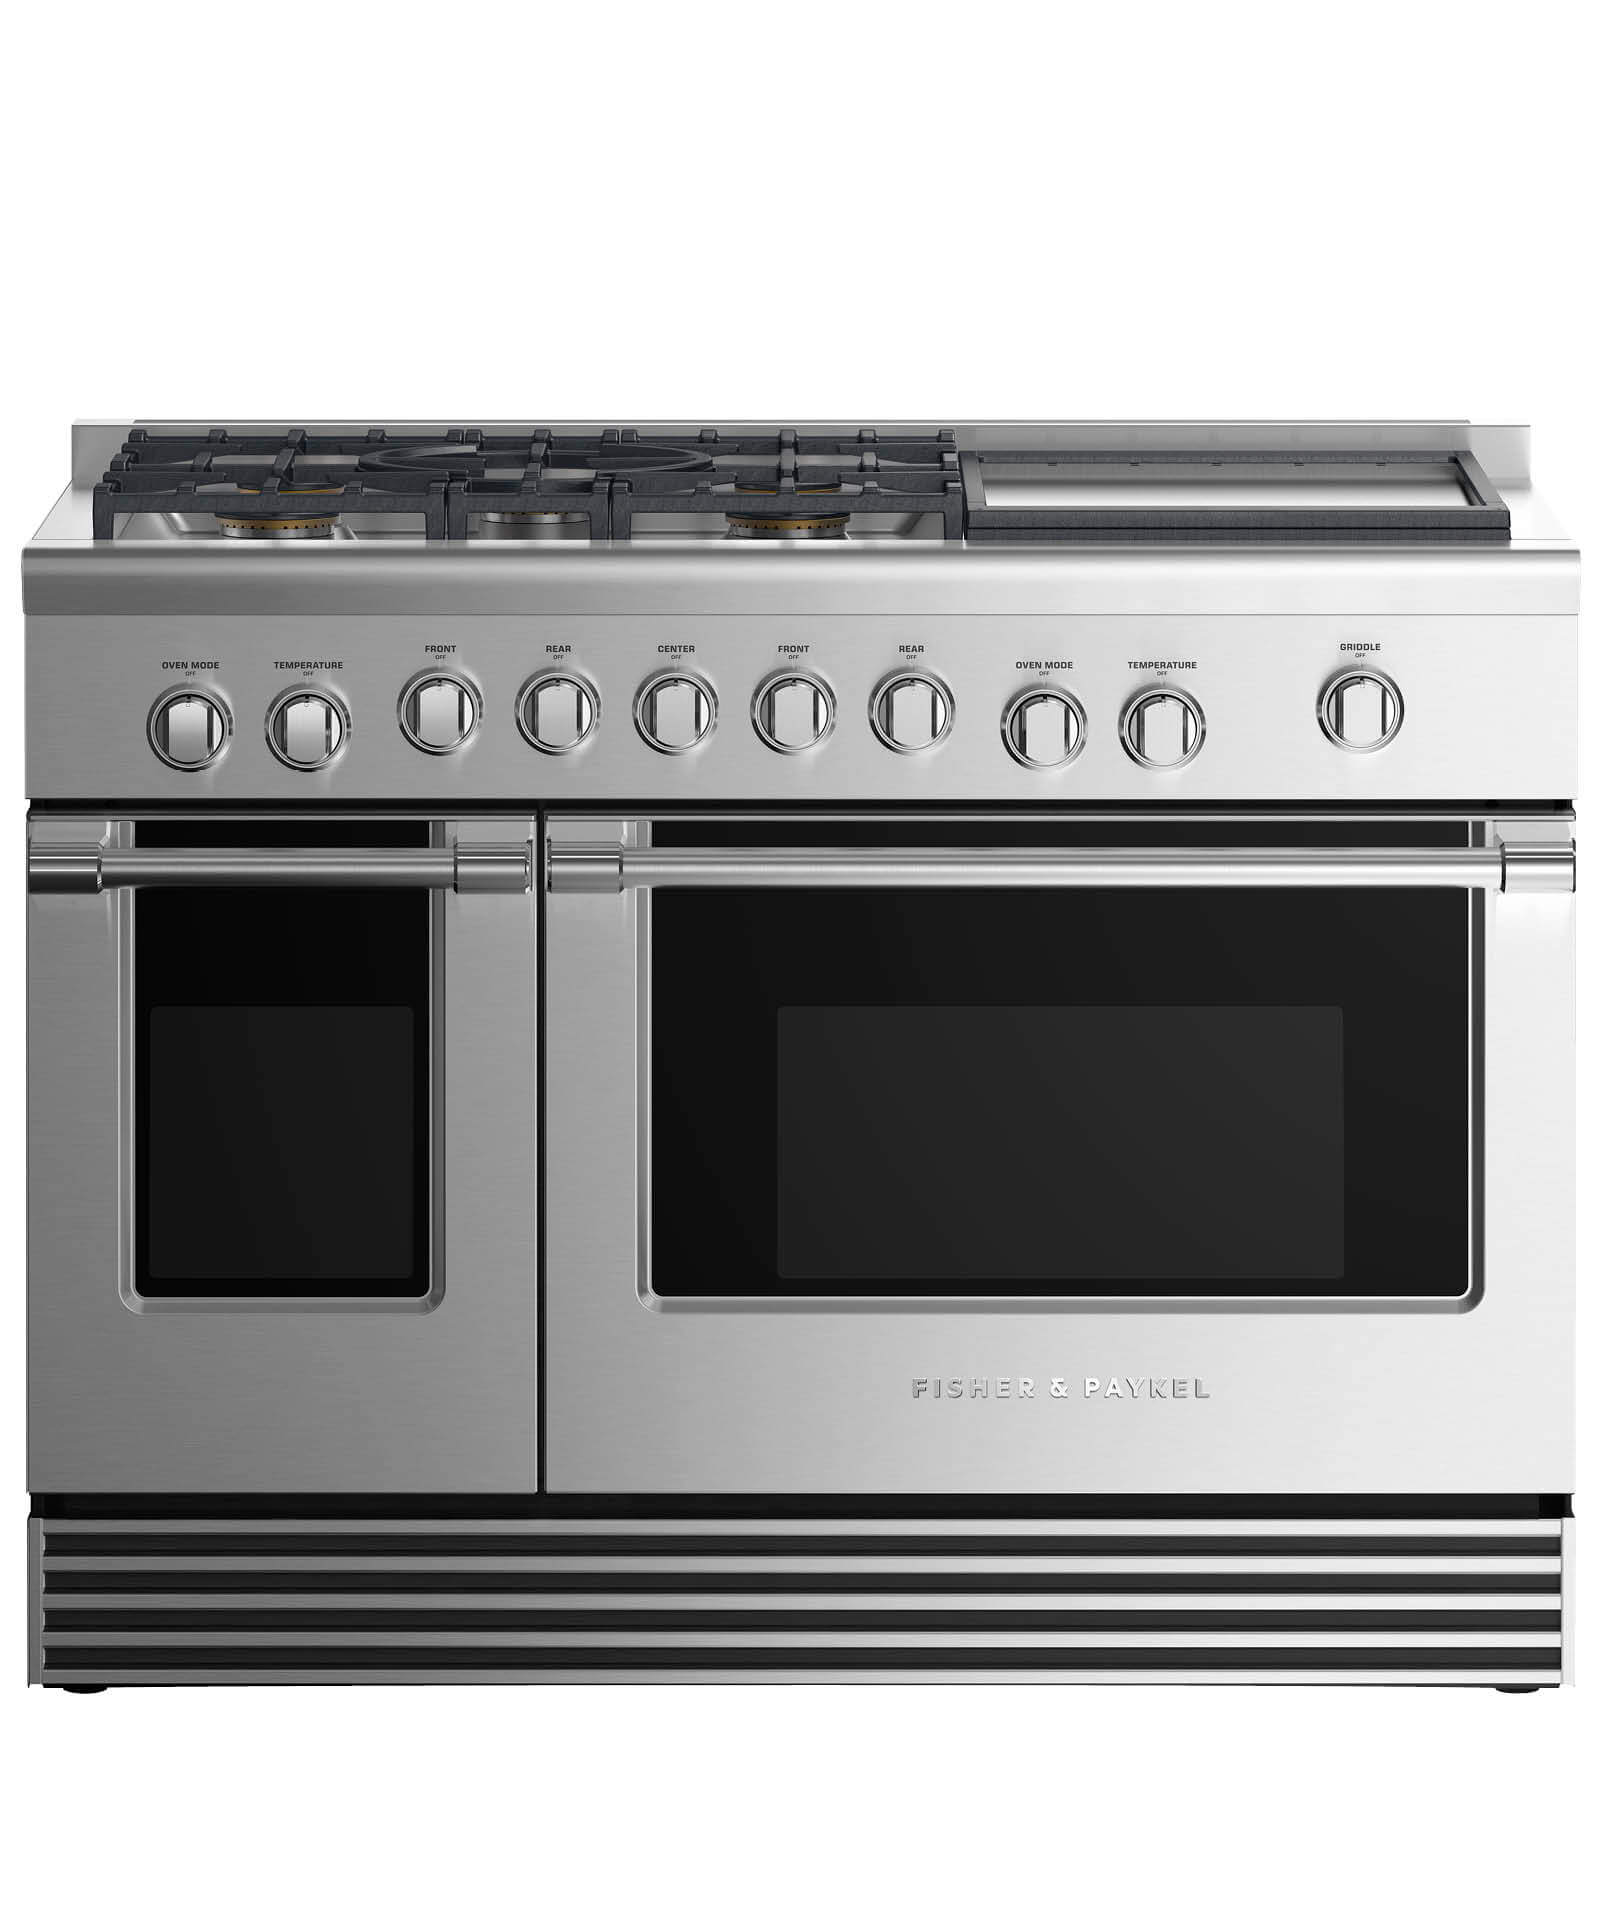 "Fisher and Paykel Dual Fuel Range 48"", 5 Burners with Griddle (LPG)"